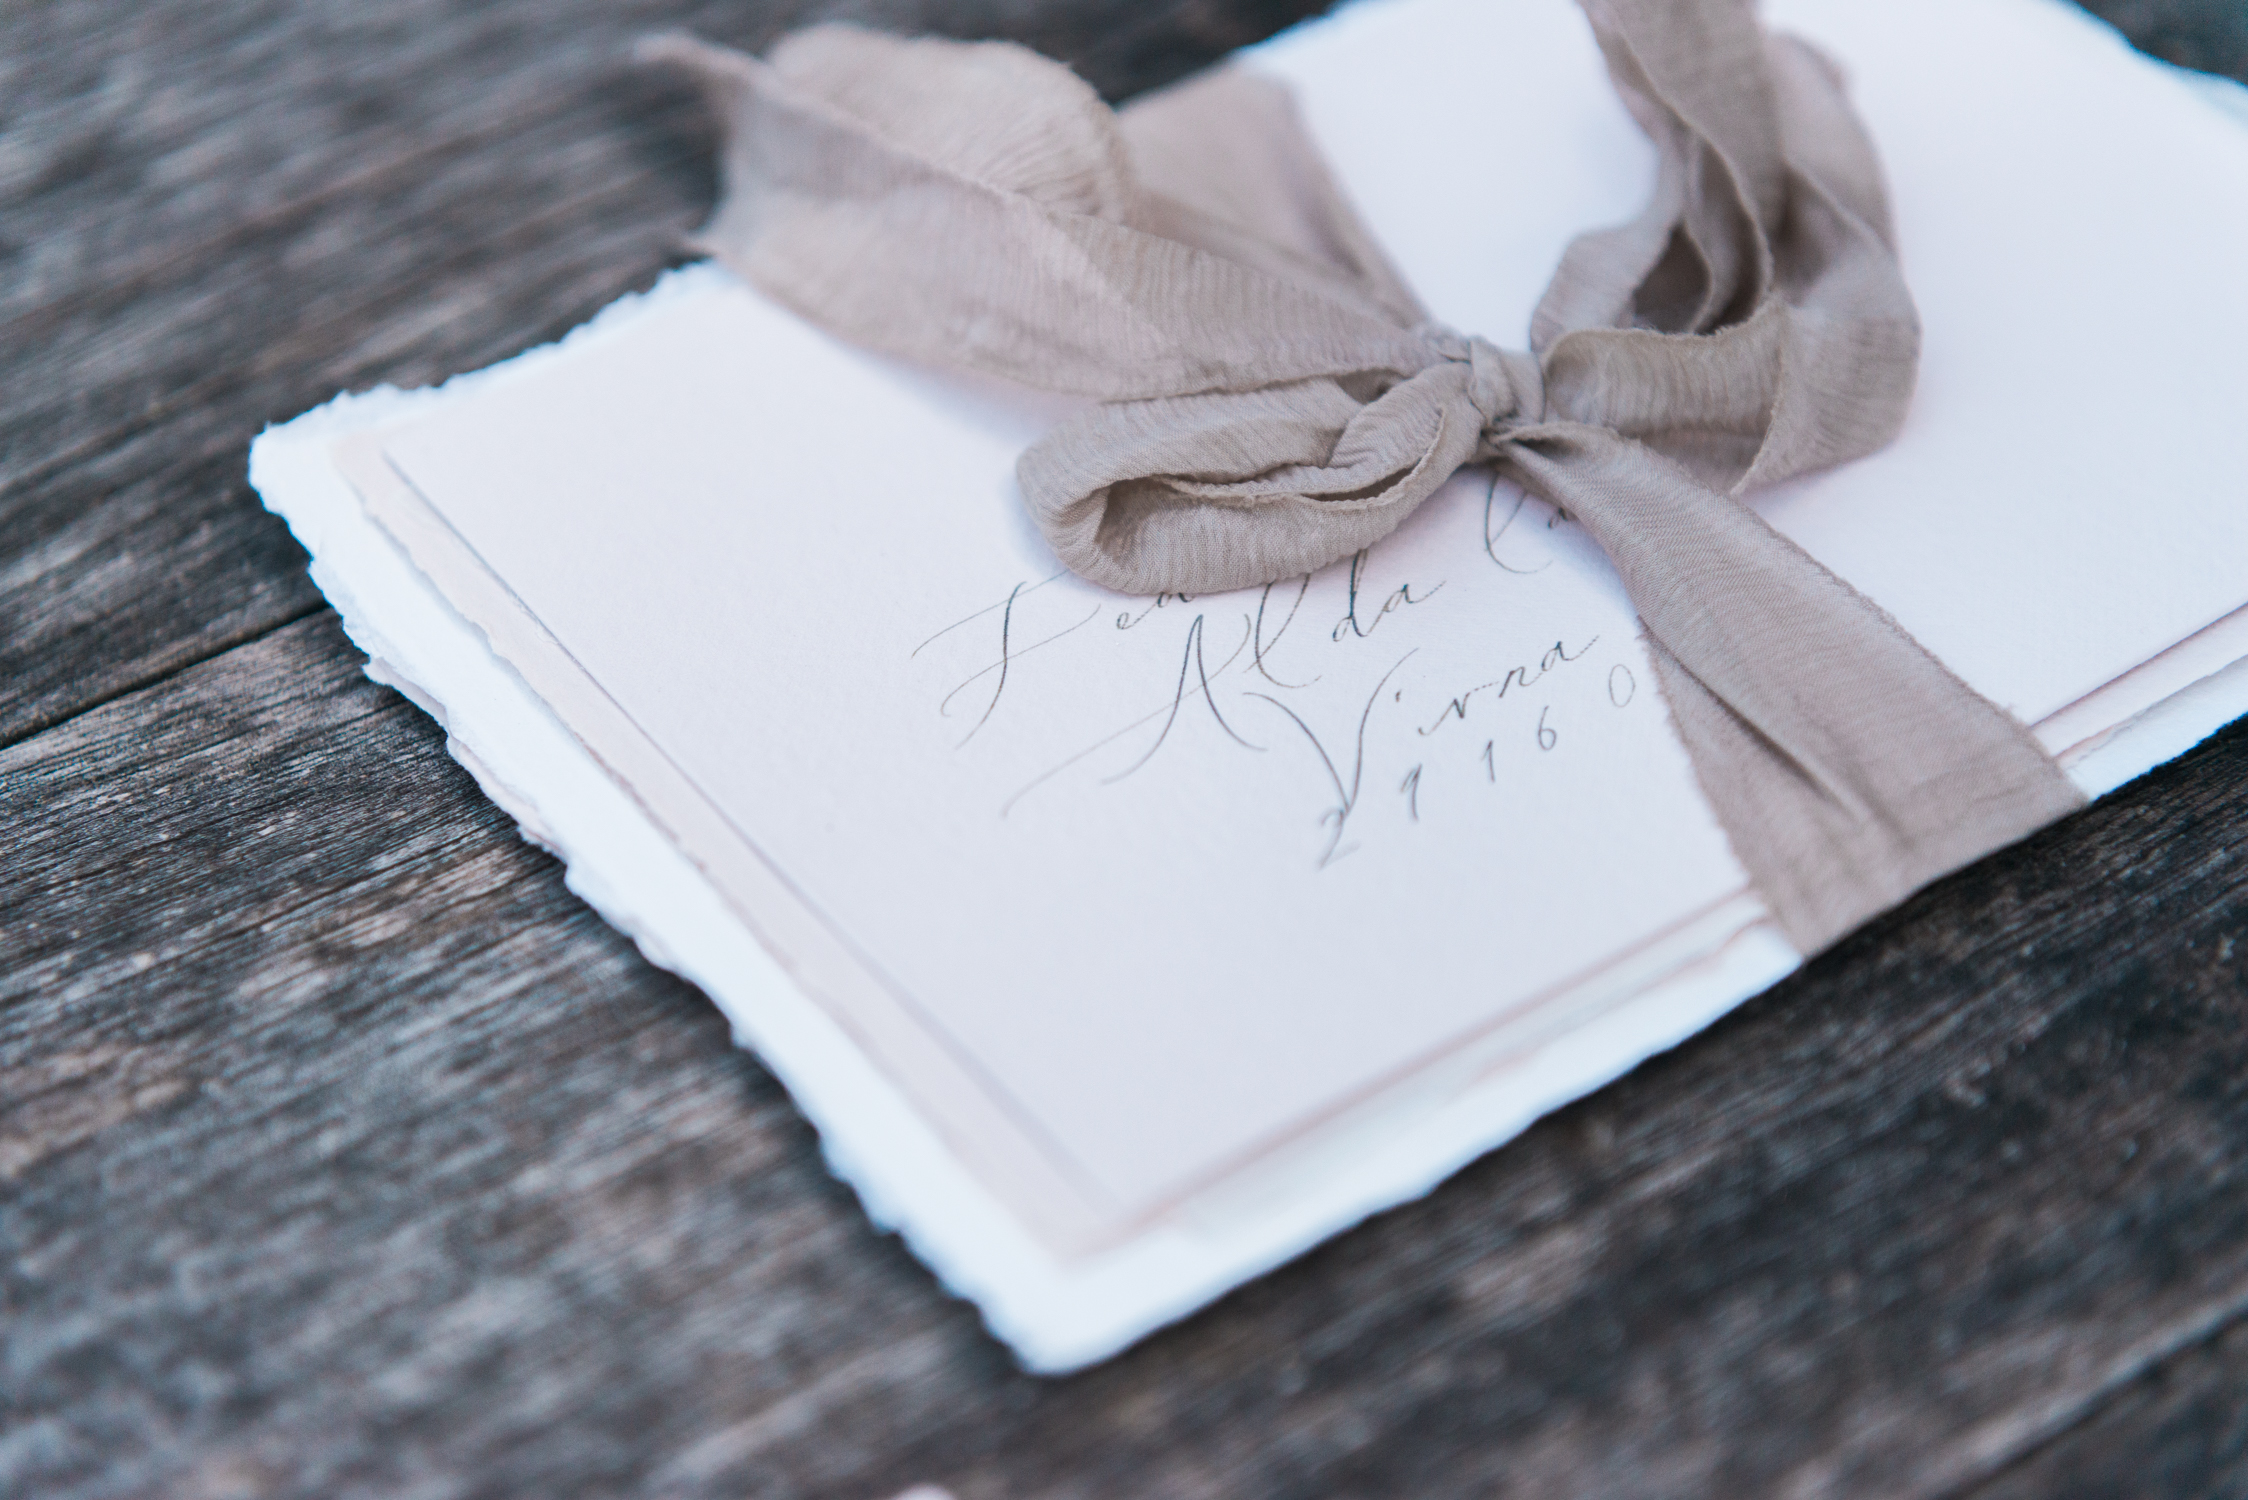 Stationery designed by Little North Sea Studio